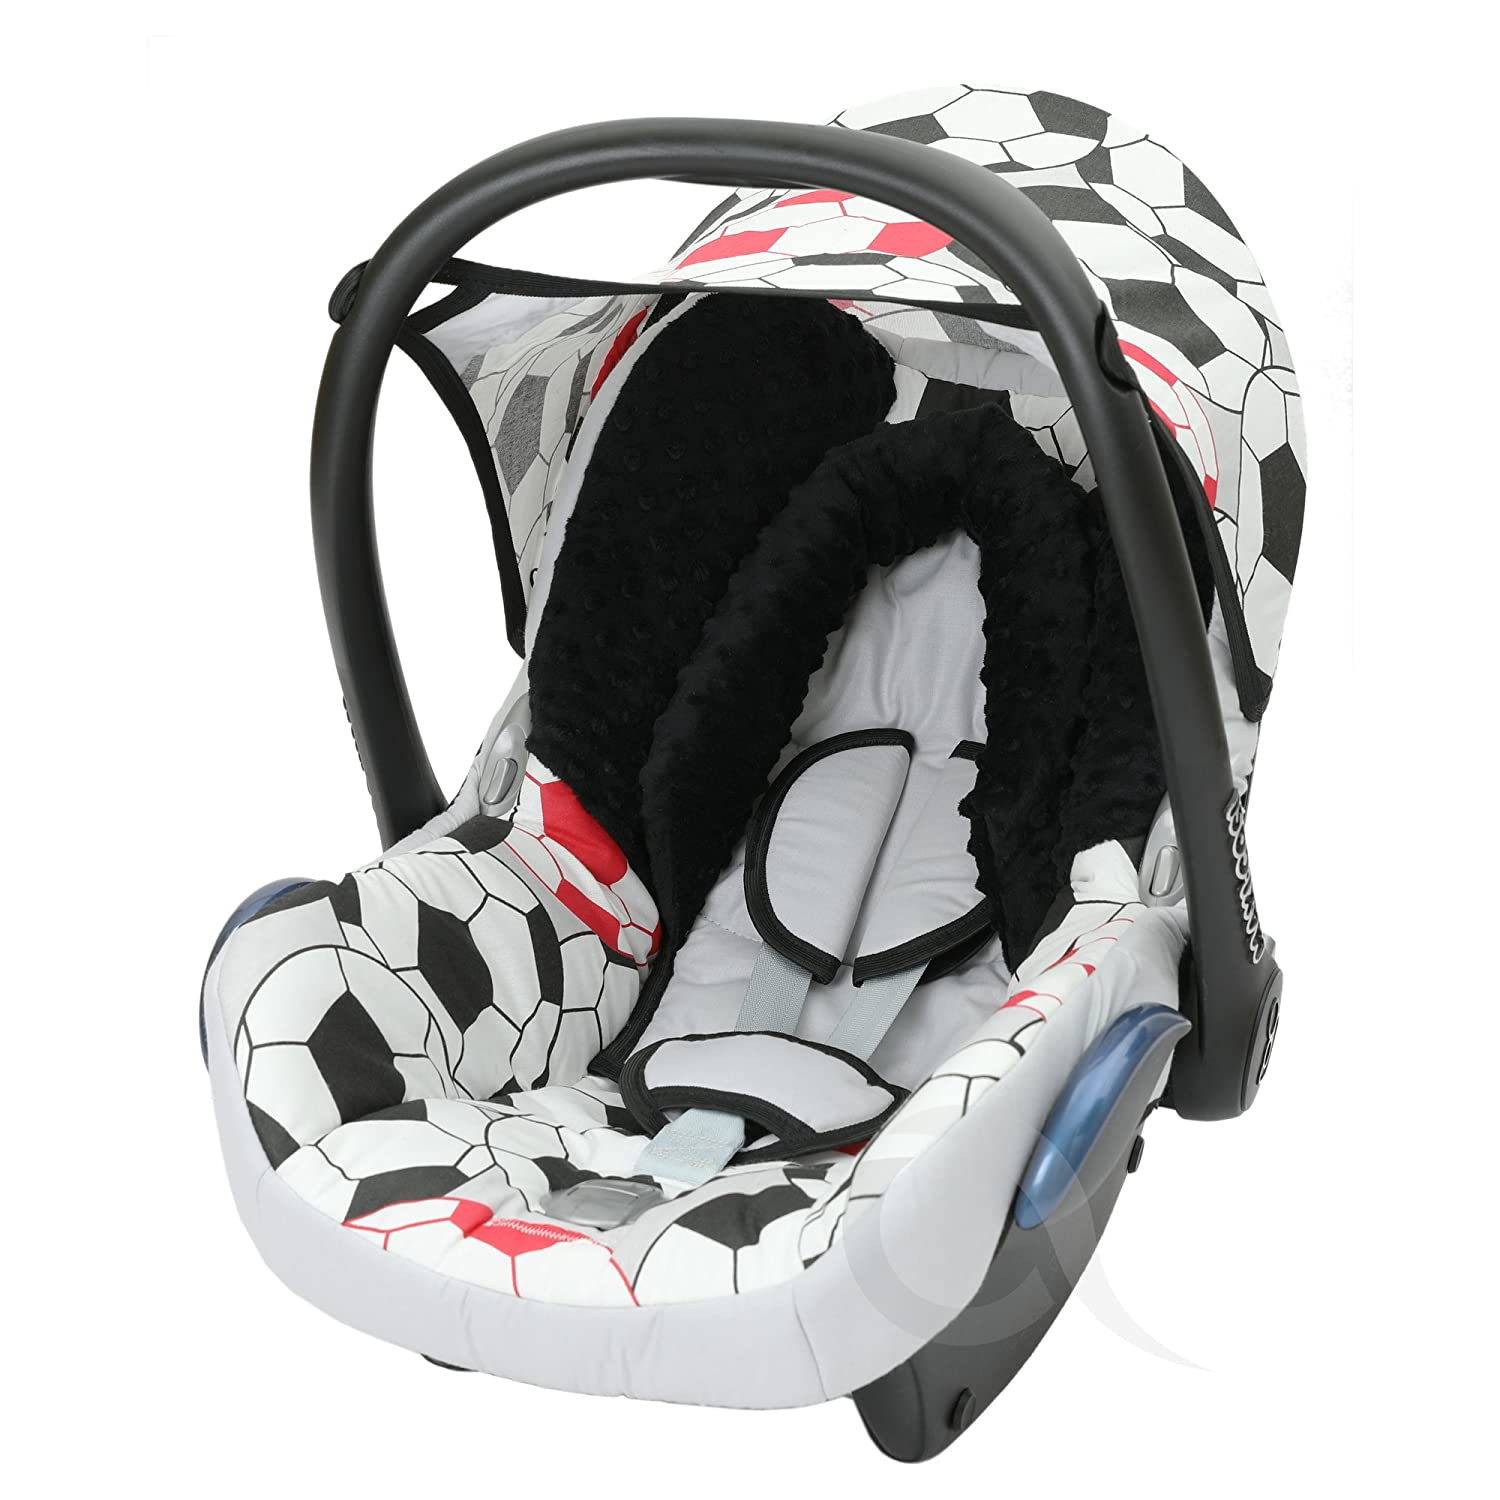 Infant Carrier FULL set COTTON Replacement Seat Cover fits Maxi-Cosi CabrioFix Group 0 red // mickey mouse